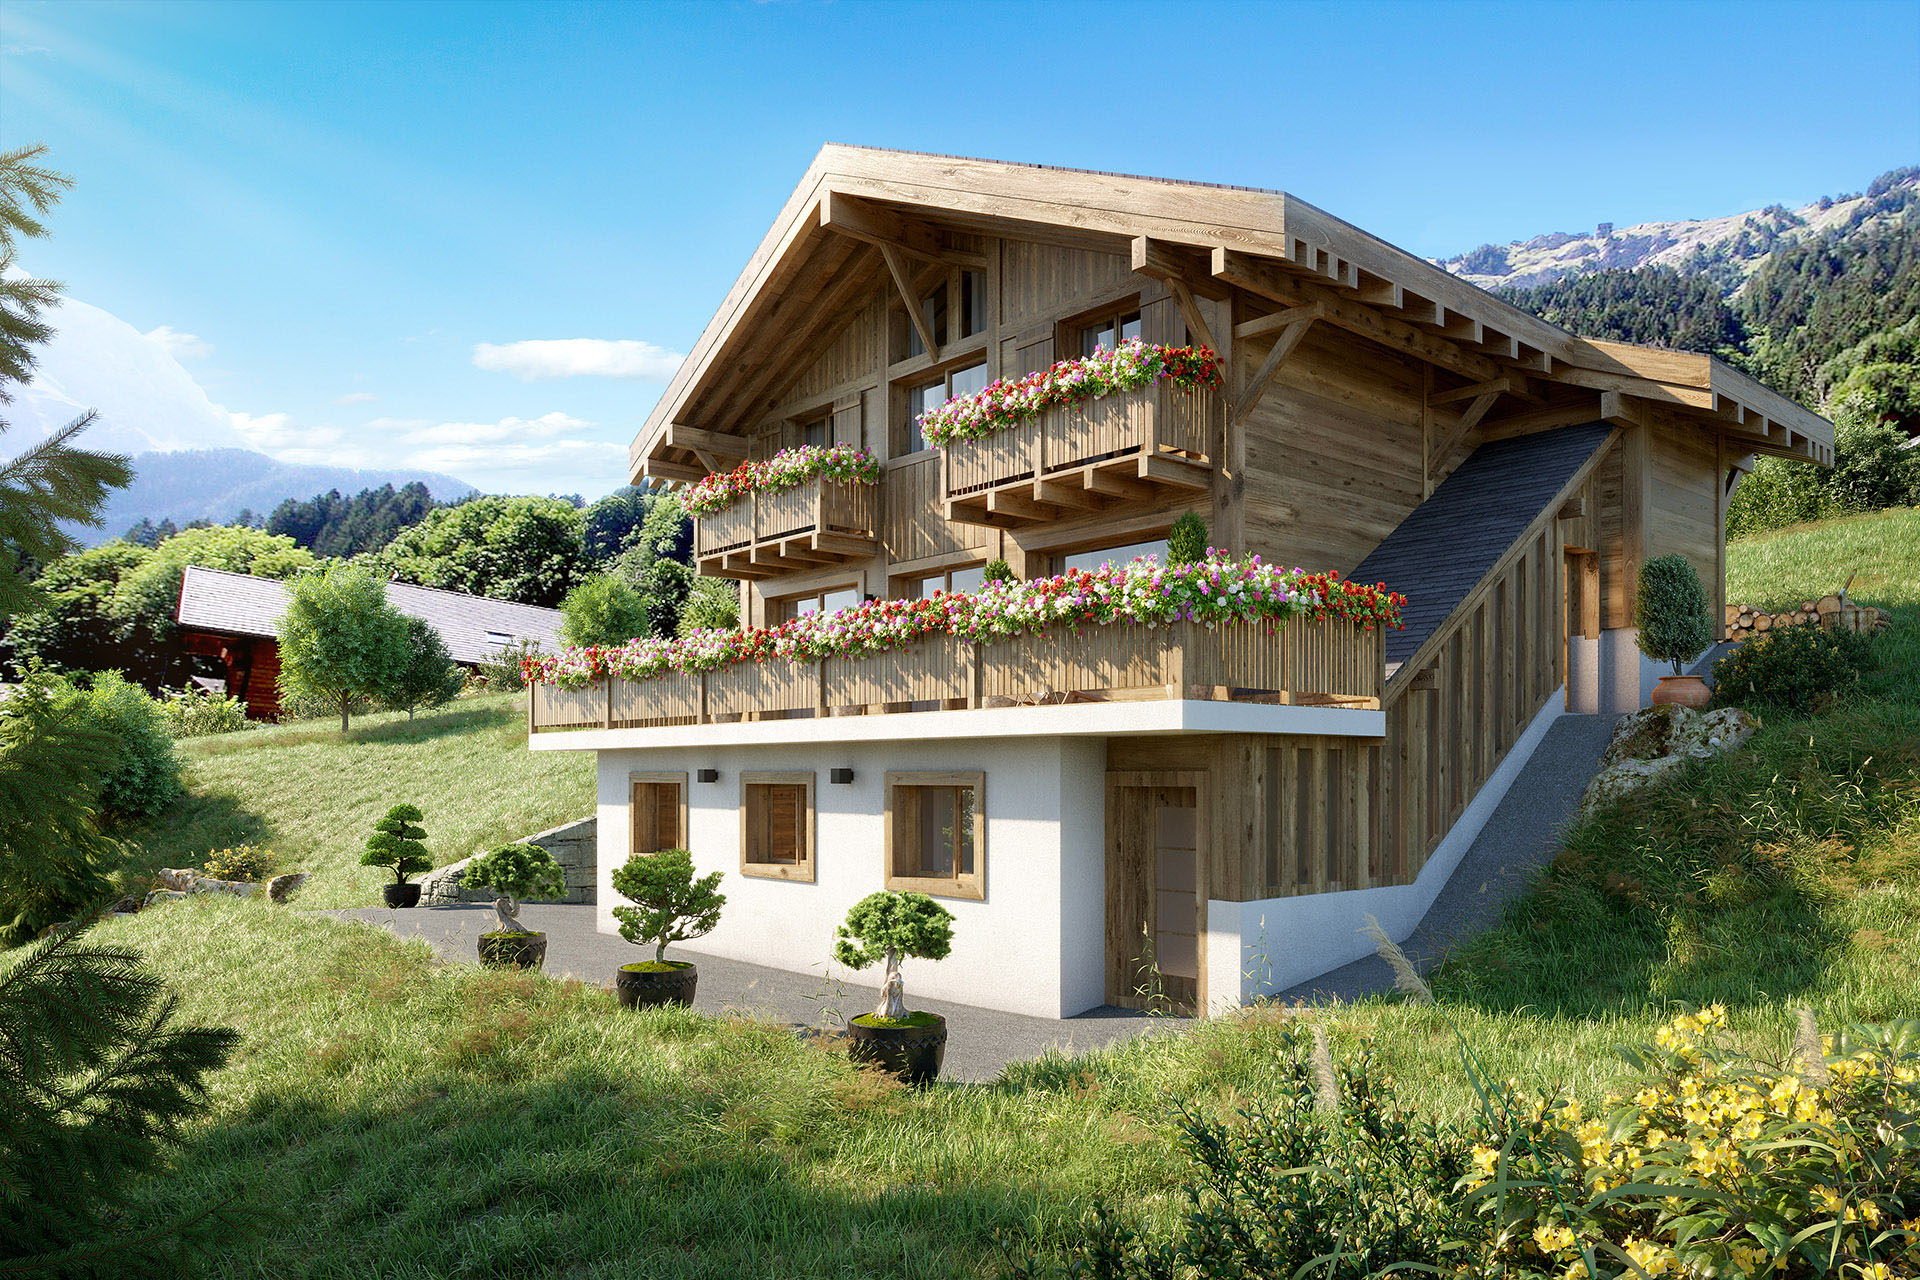 3D visualization of the exterior of a mountain chalet in summer